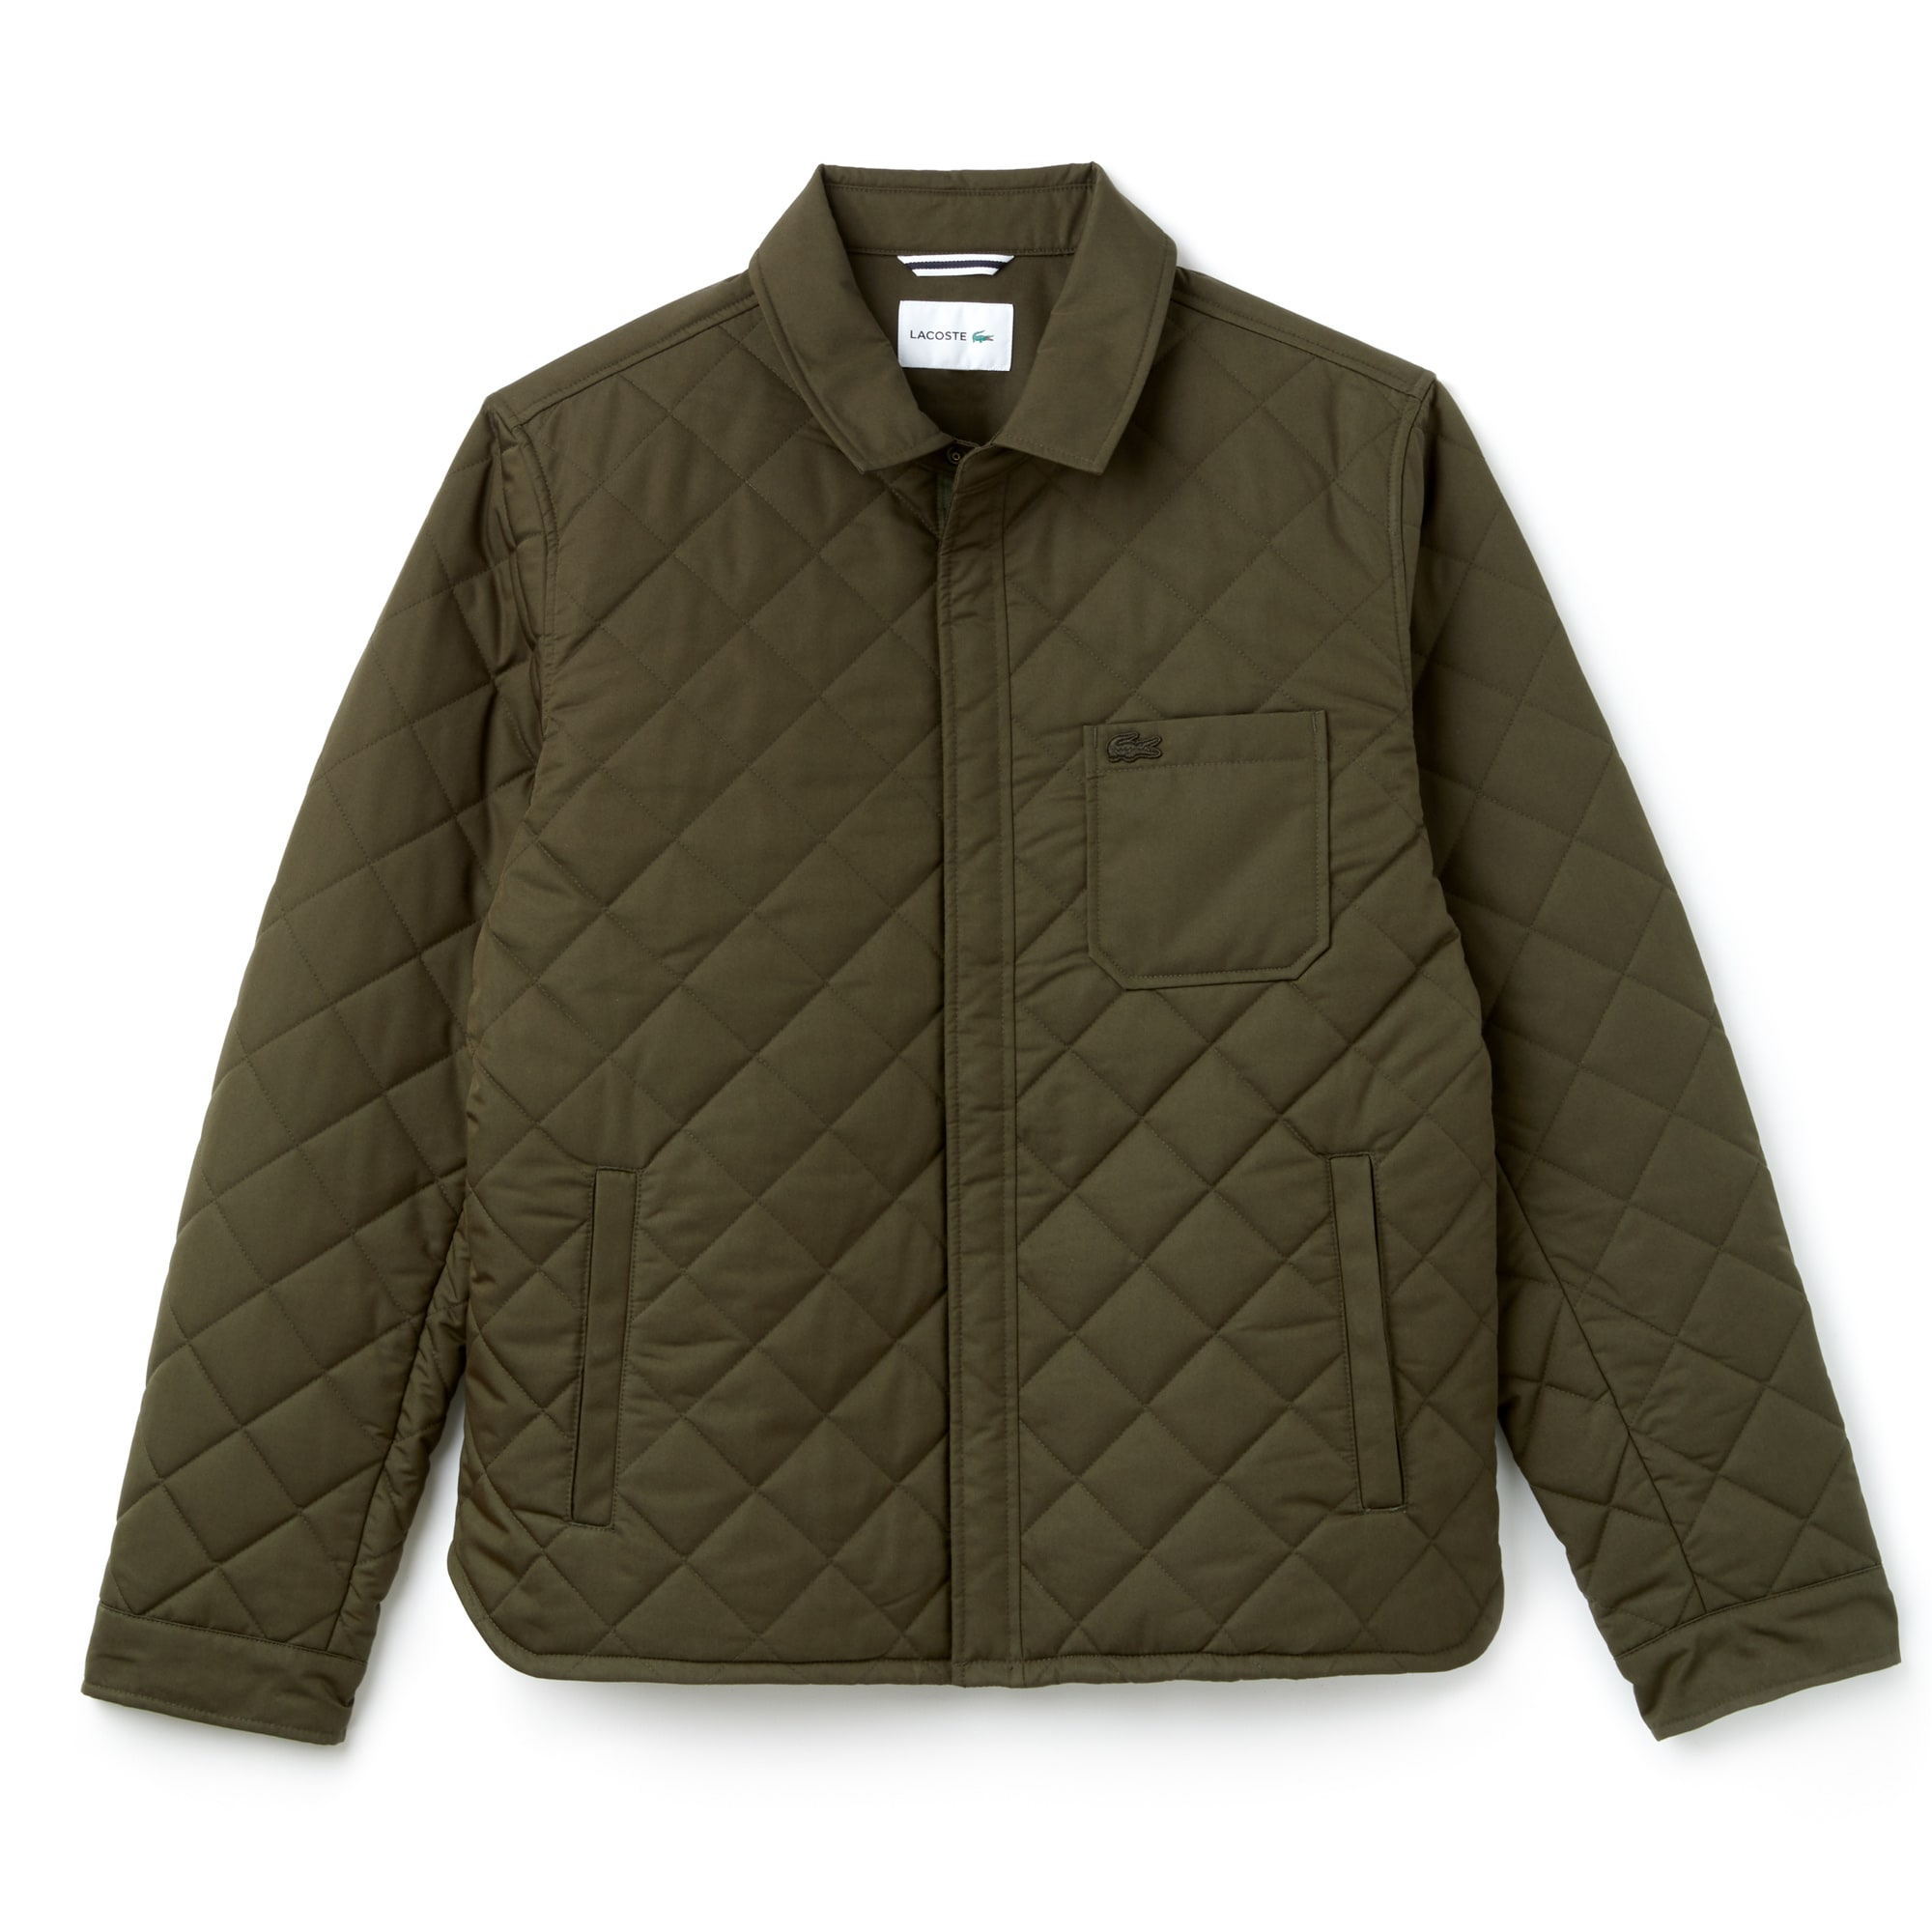 Men's Texturized Cotton Short Quilted Jacket